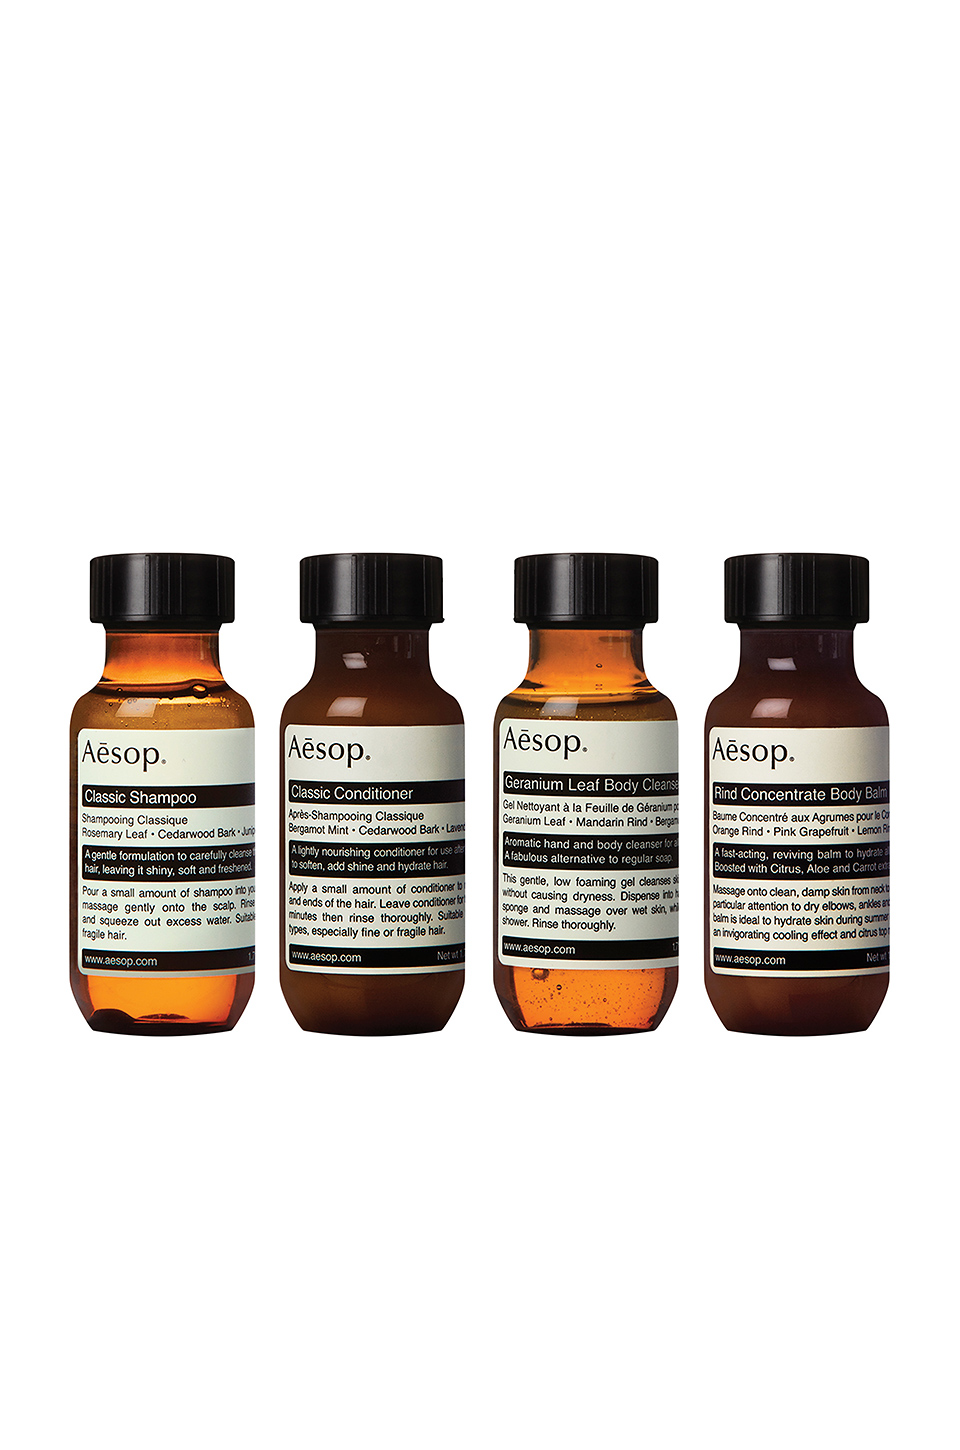 Aesop Jet Set Kit in All